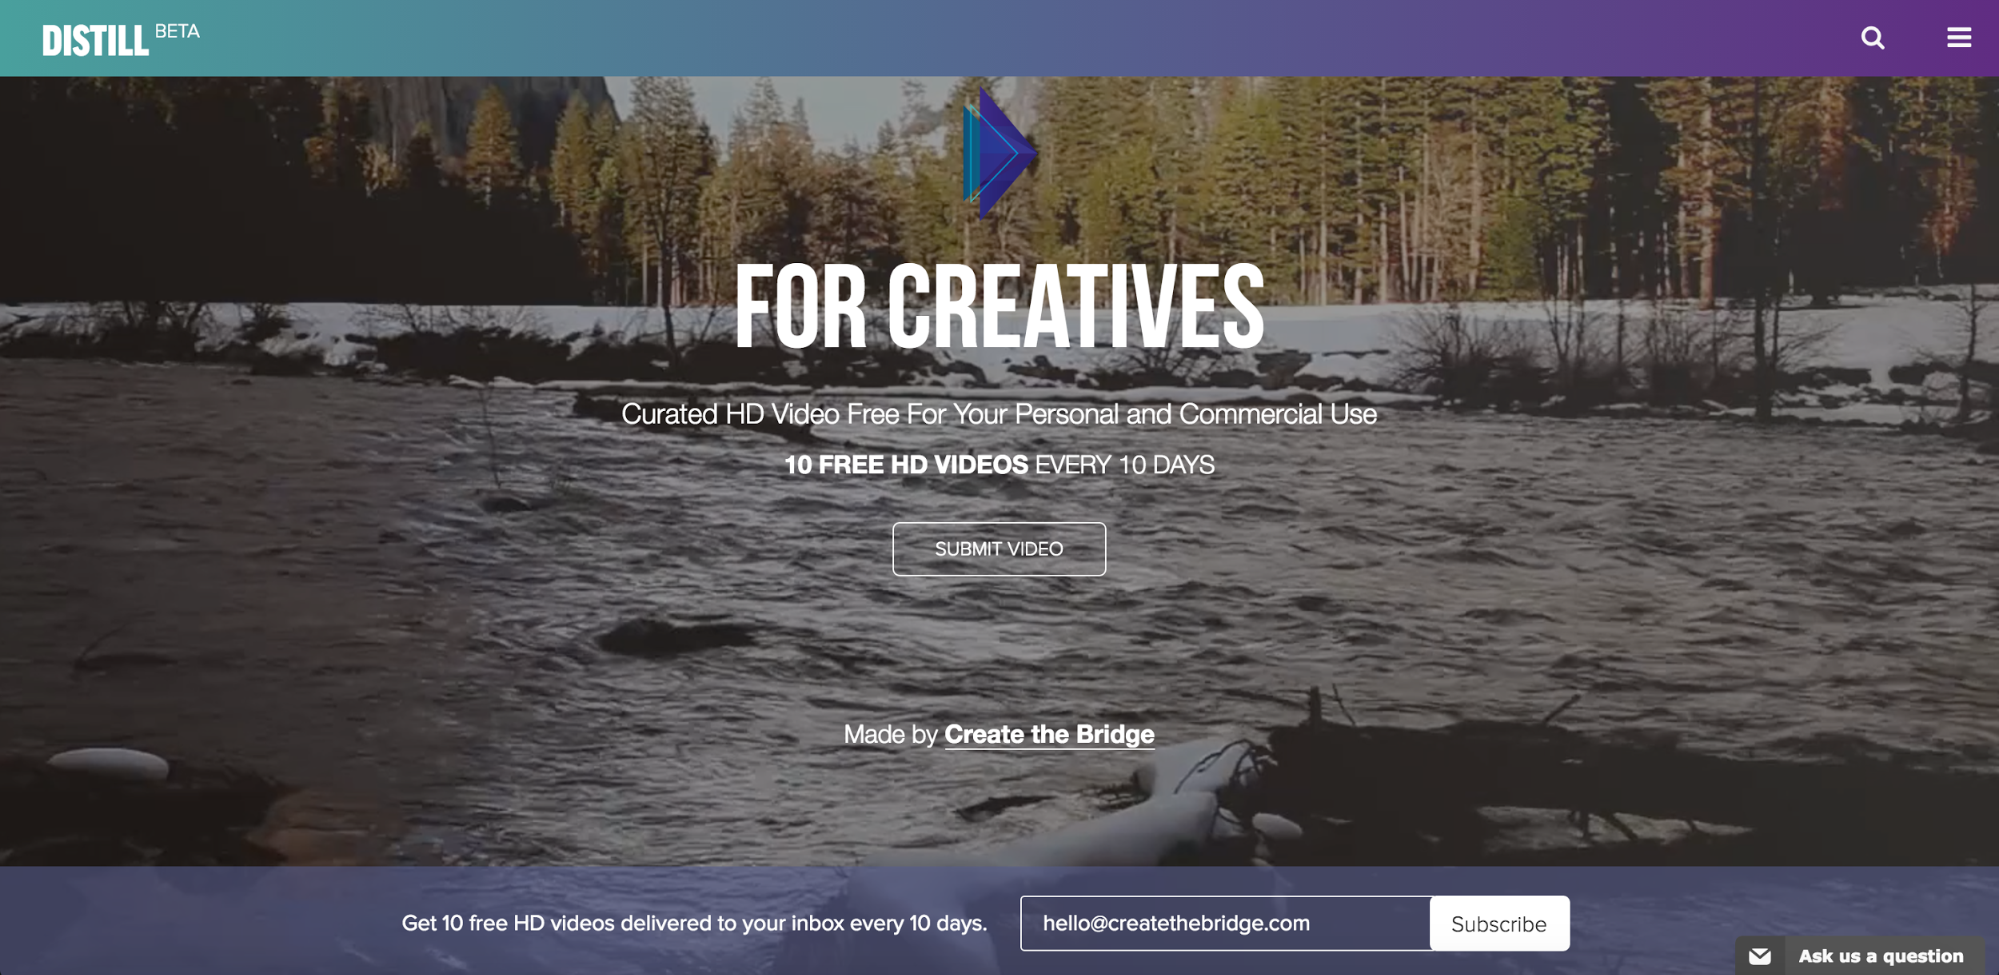 Distill offers free video files for creatives